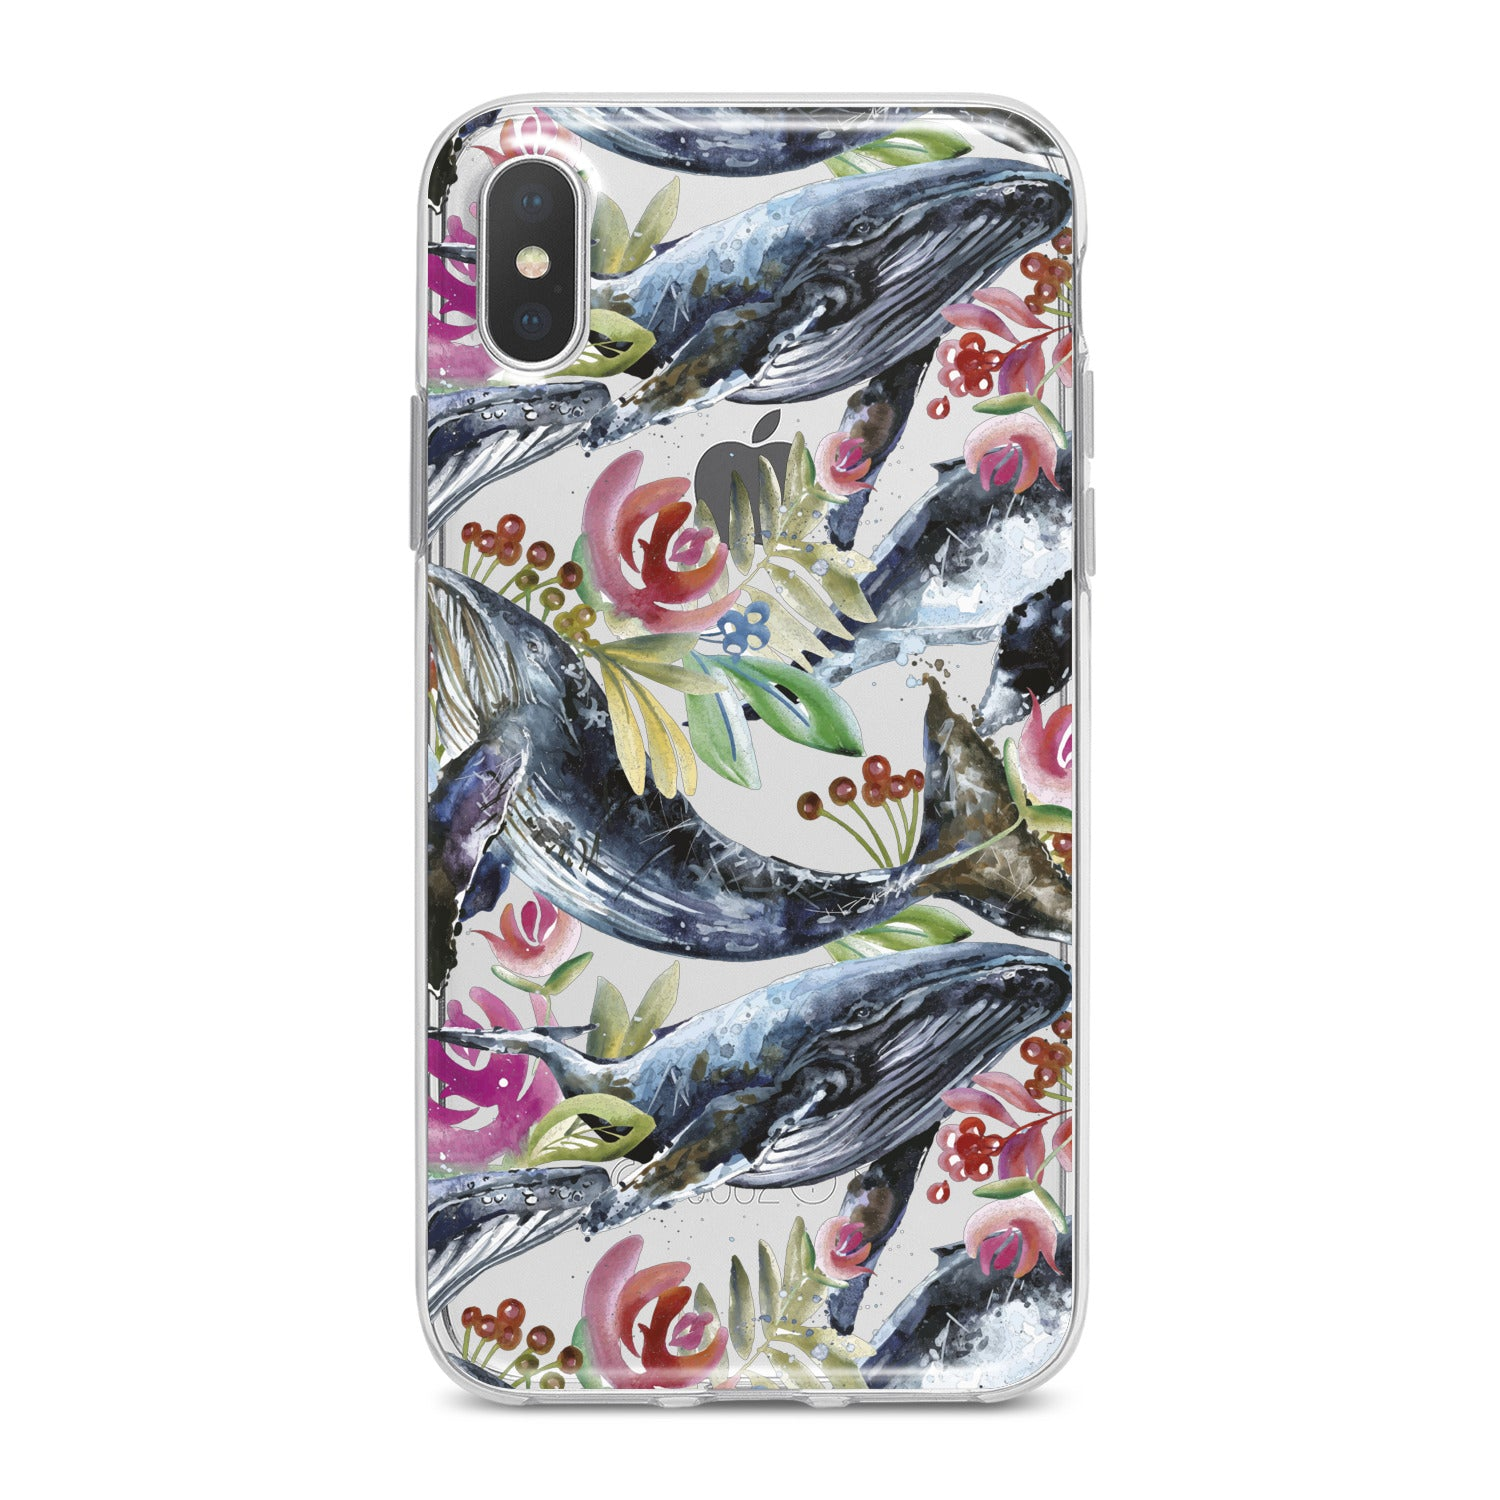 Lex Altern Blue Whale Pattern Phone Case for your iPhone & Android phone.